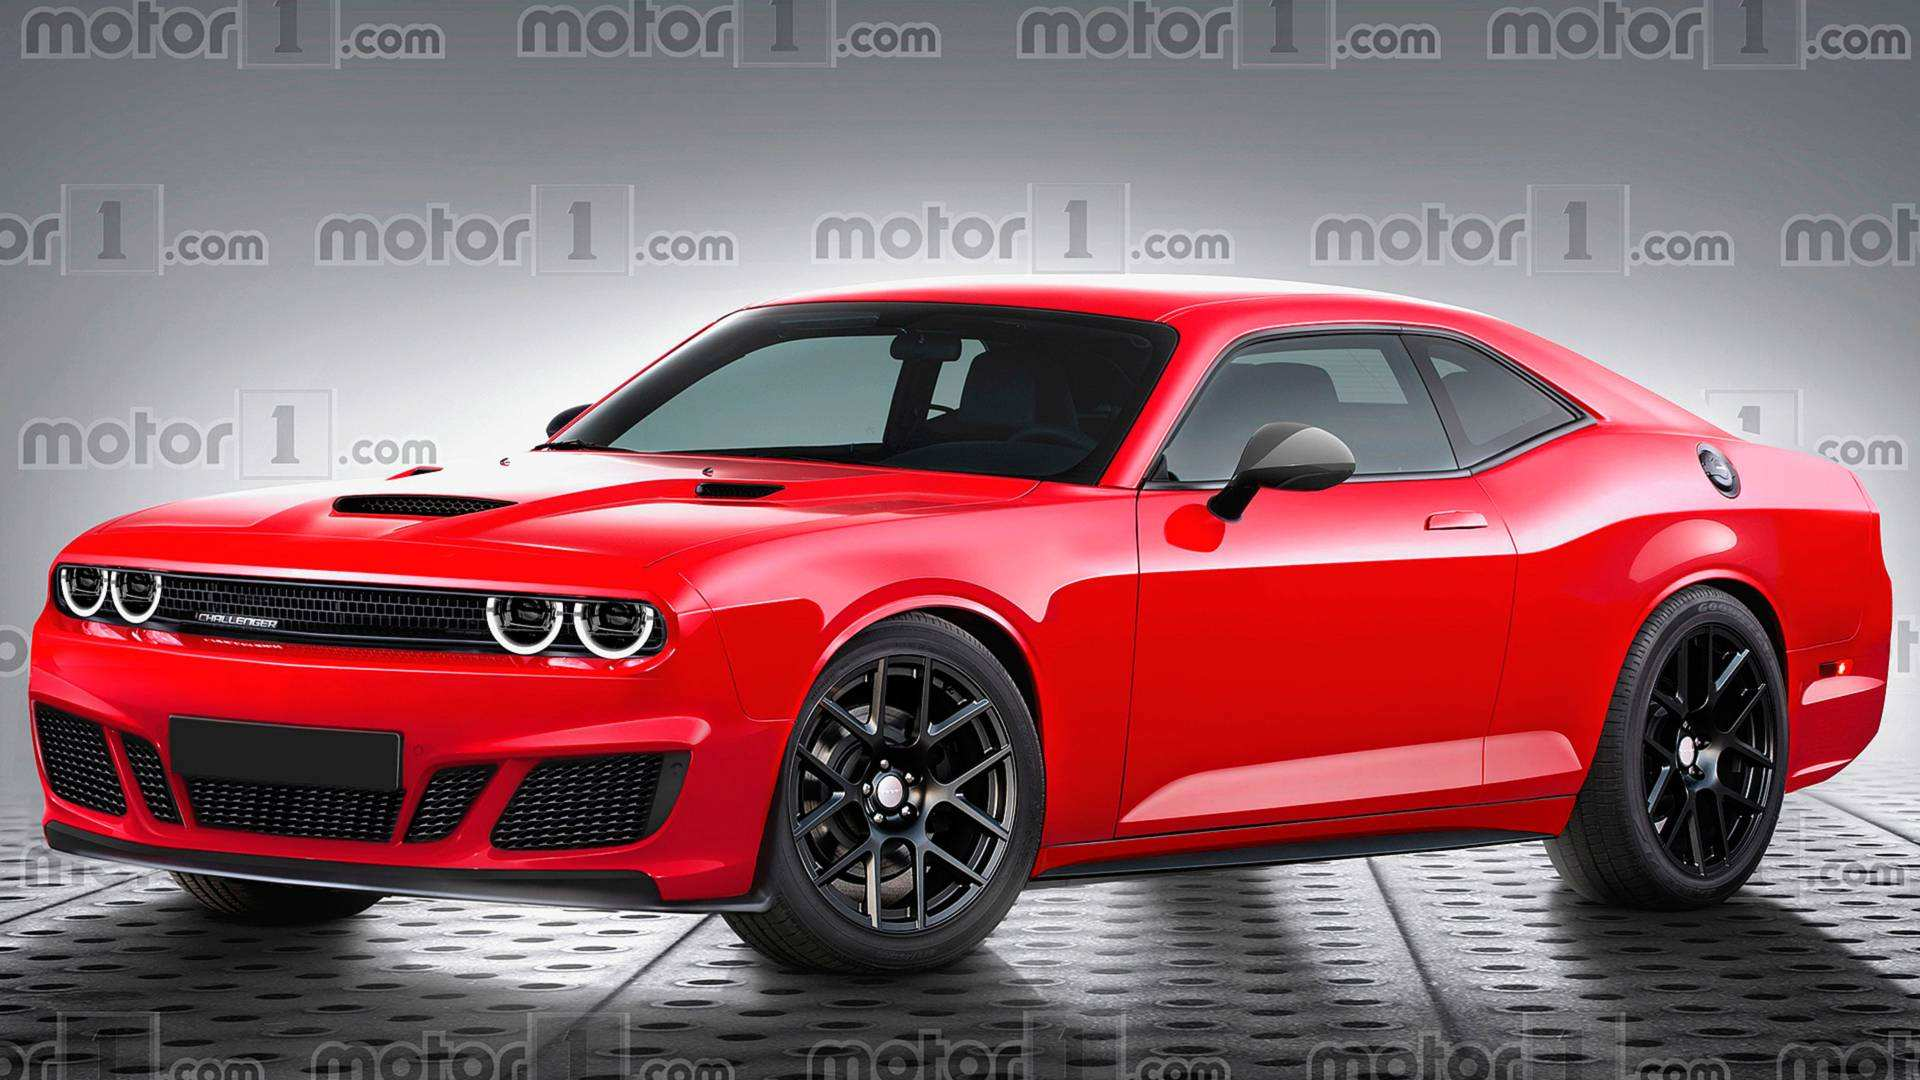 11 New Dodge Challenger Concept 2020 Pricing